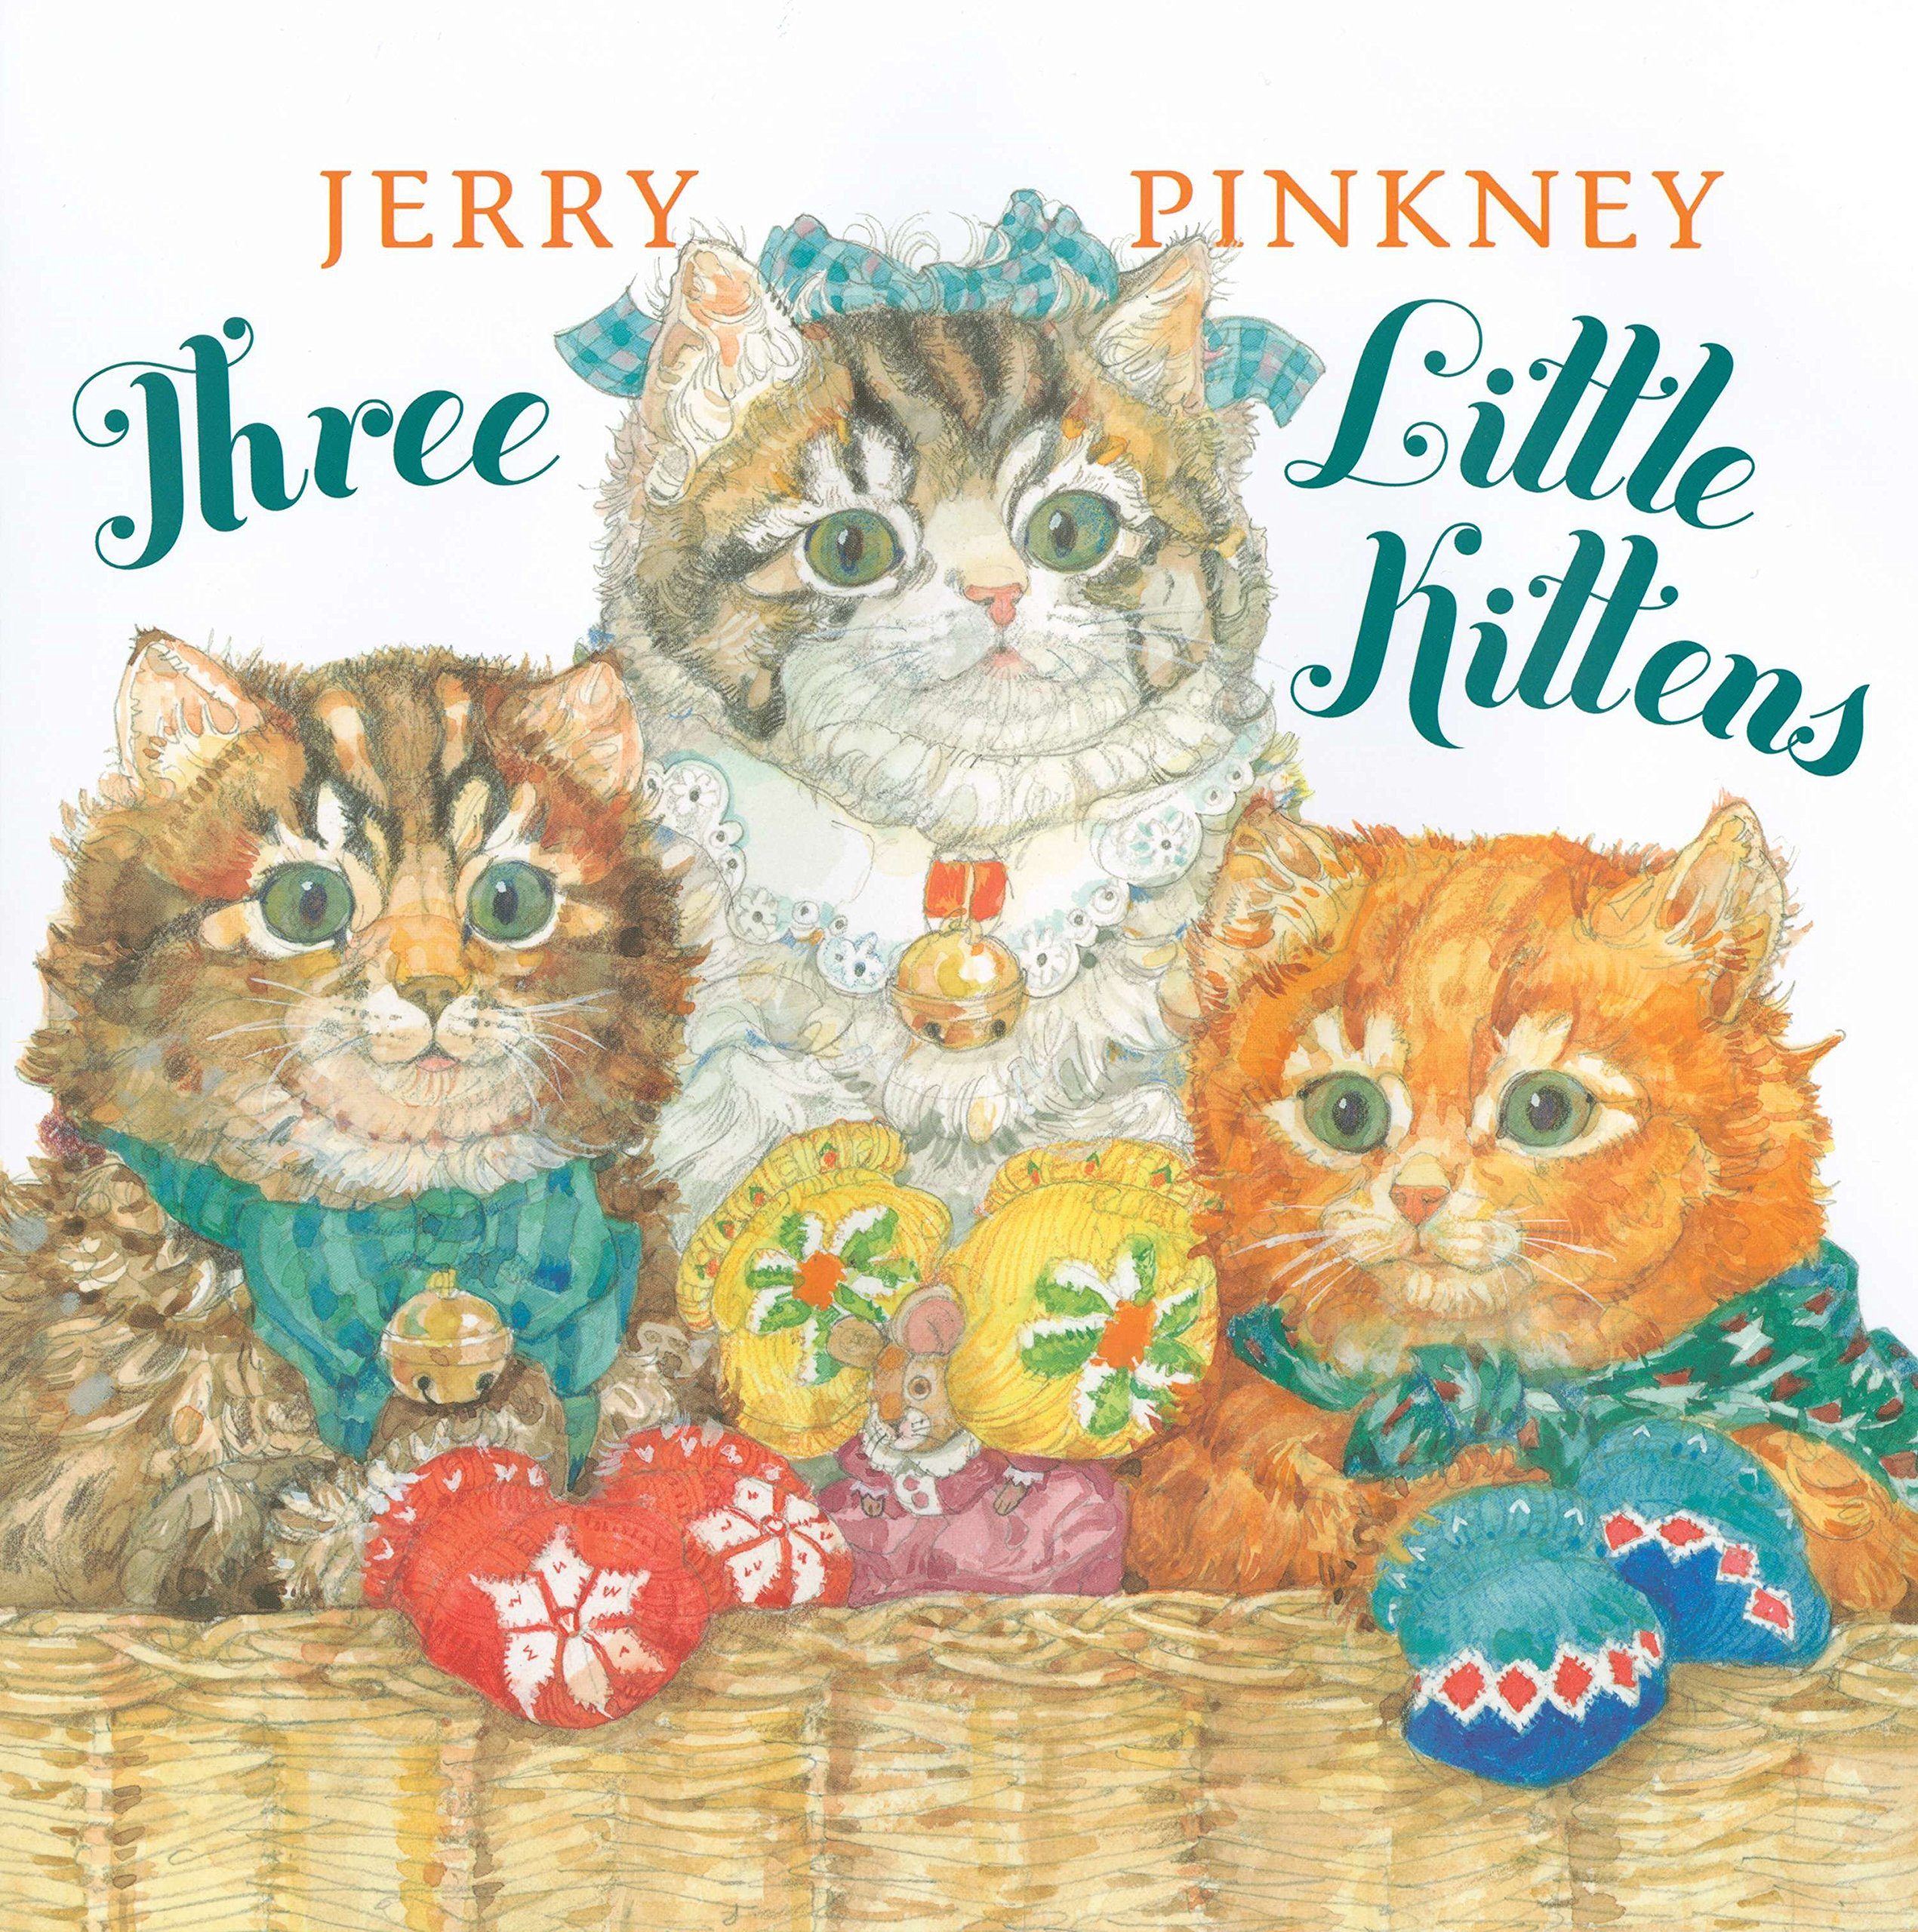 Amazon Com Three Little Kittens 9780803735330 Pinkney Jerry Pinkney Jerry Books